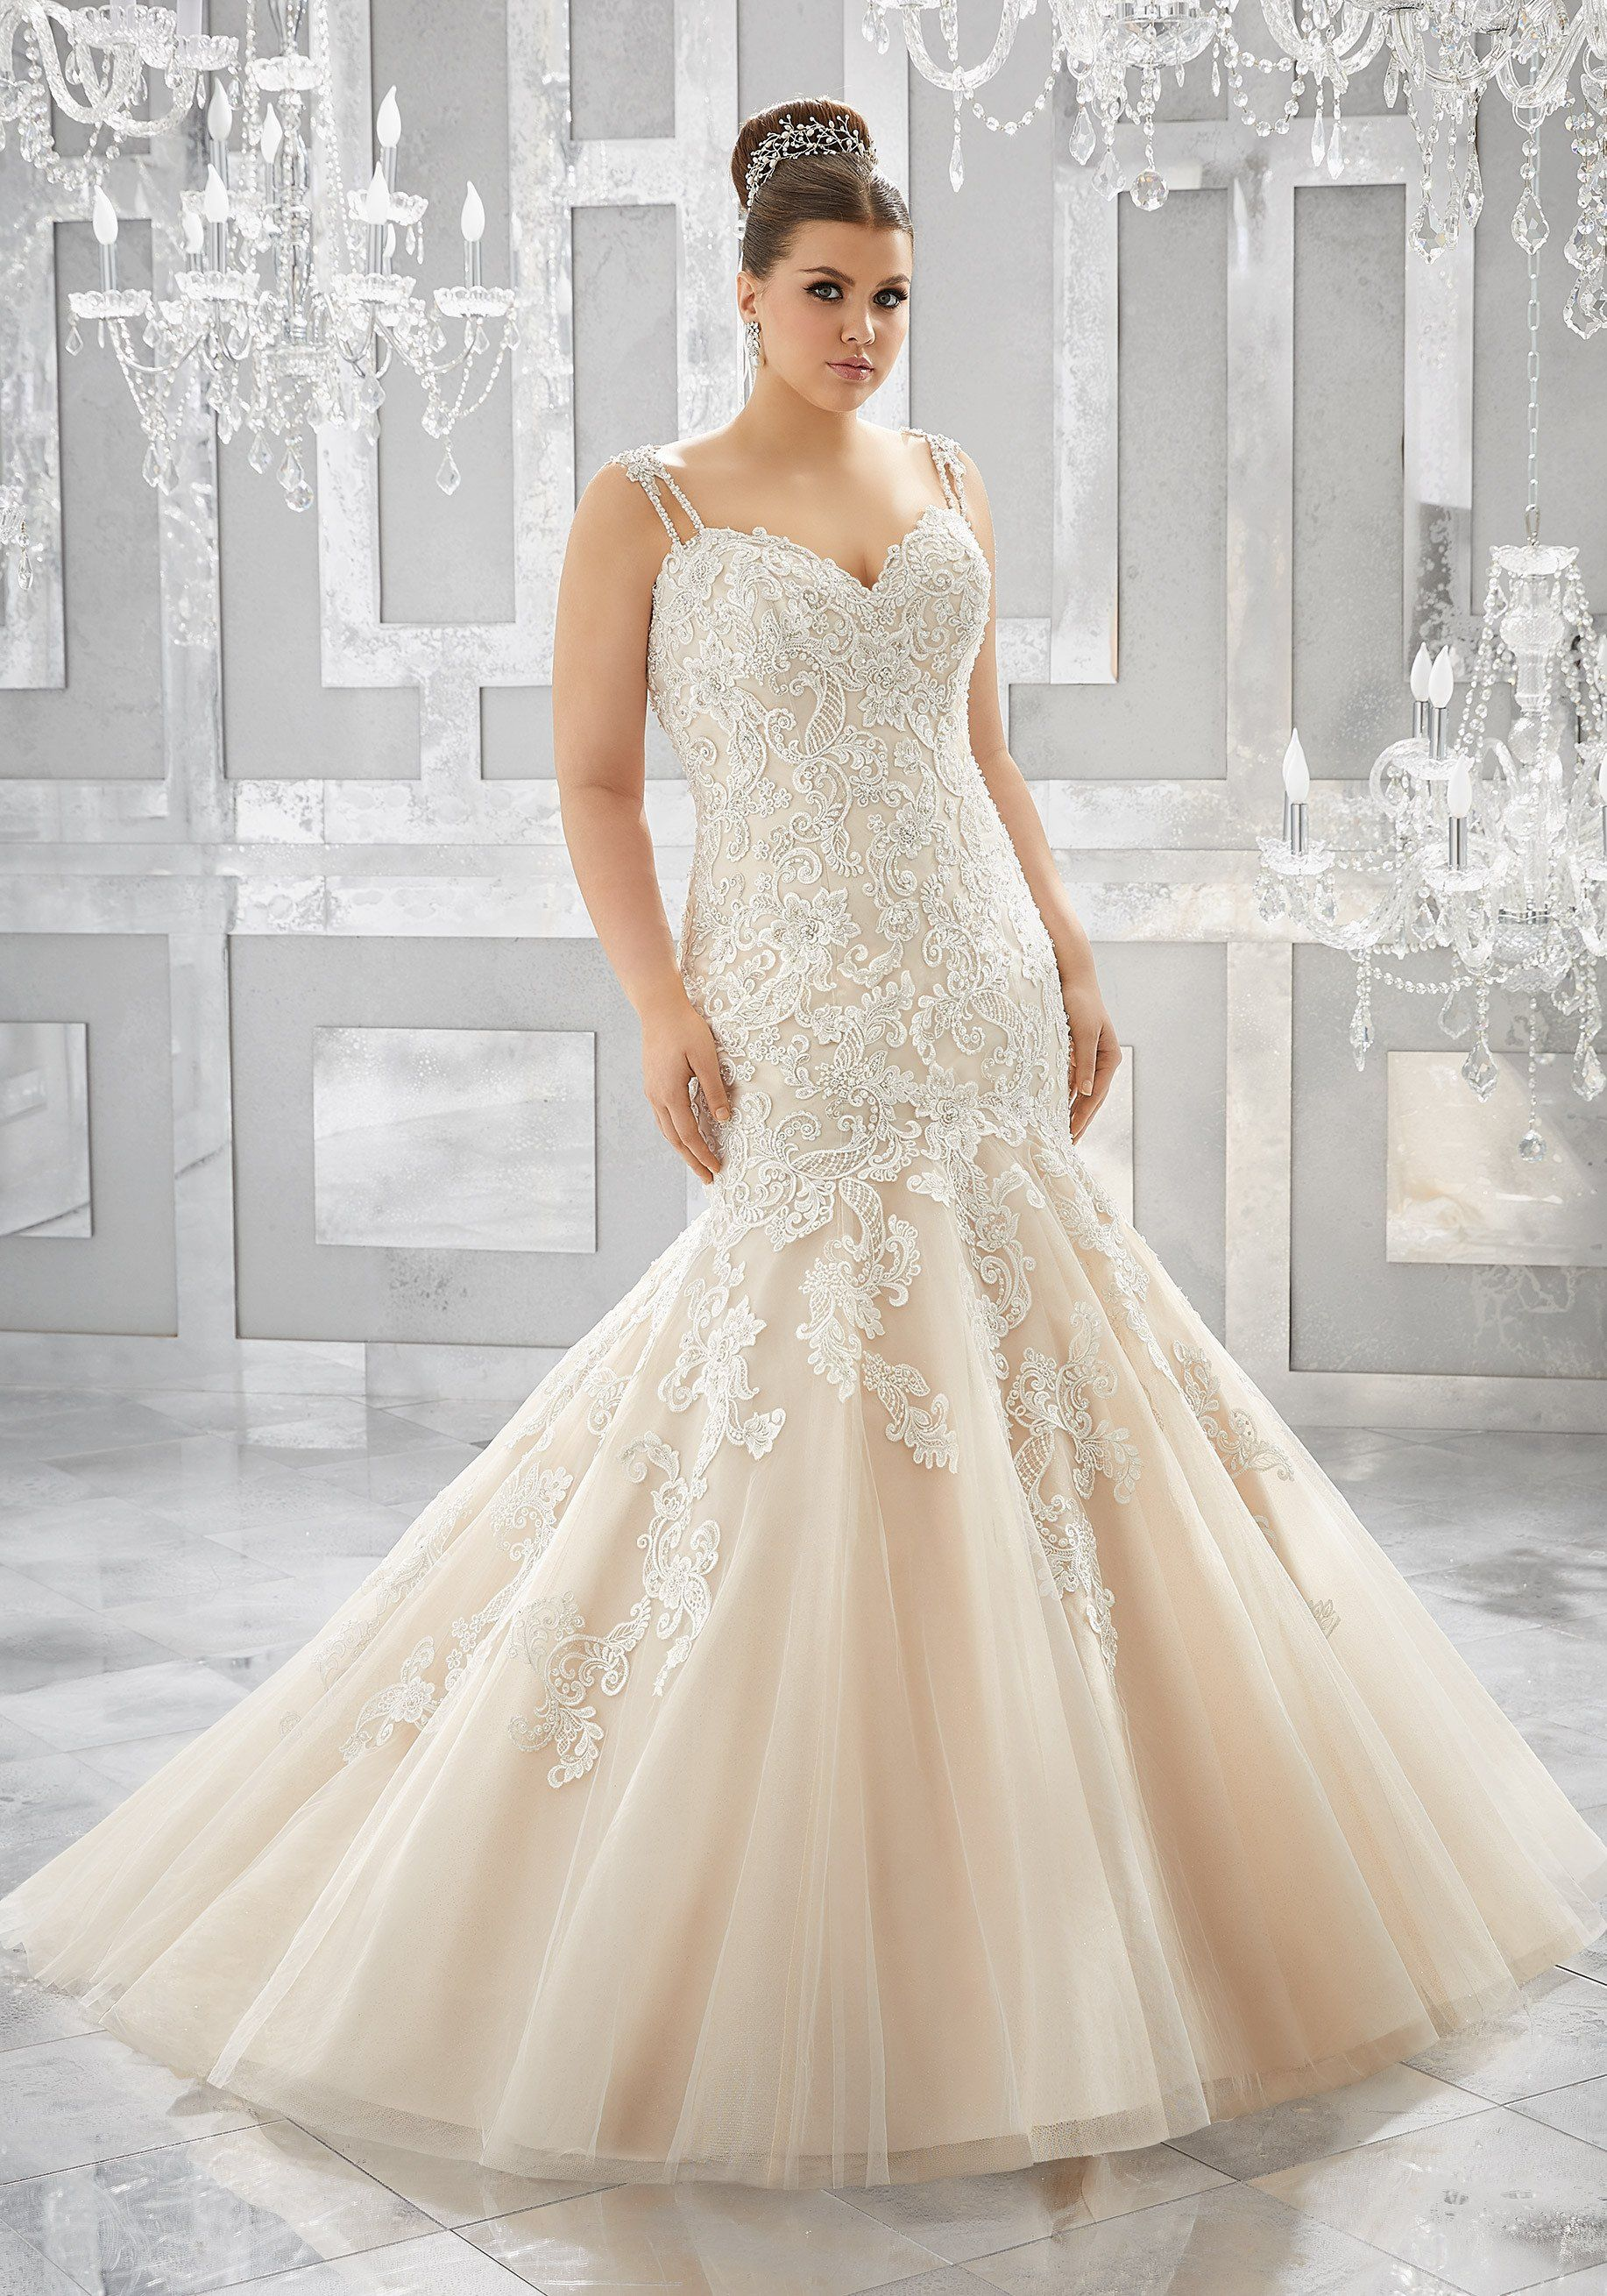 musetta wedding dress wedding ideas pinterest wedding